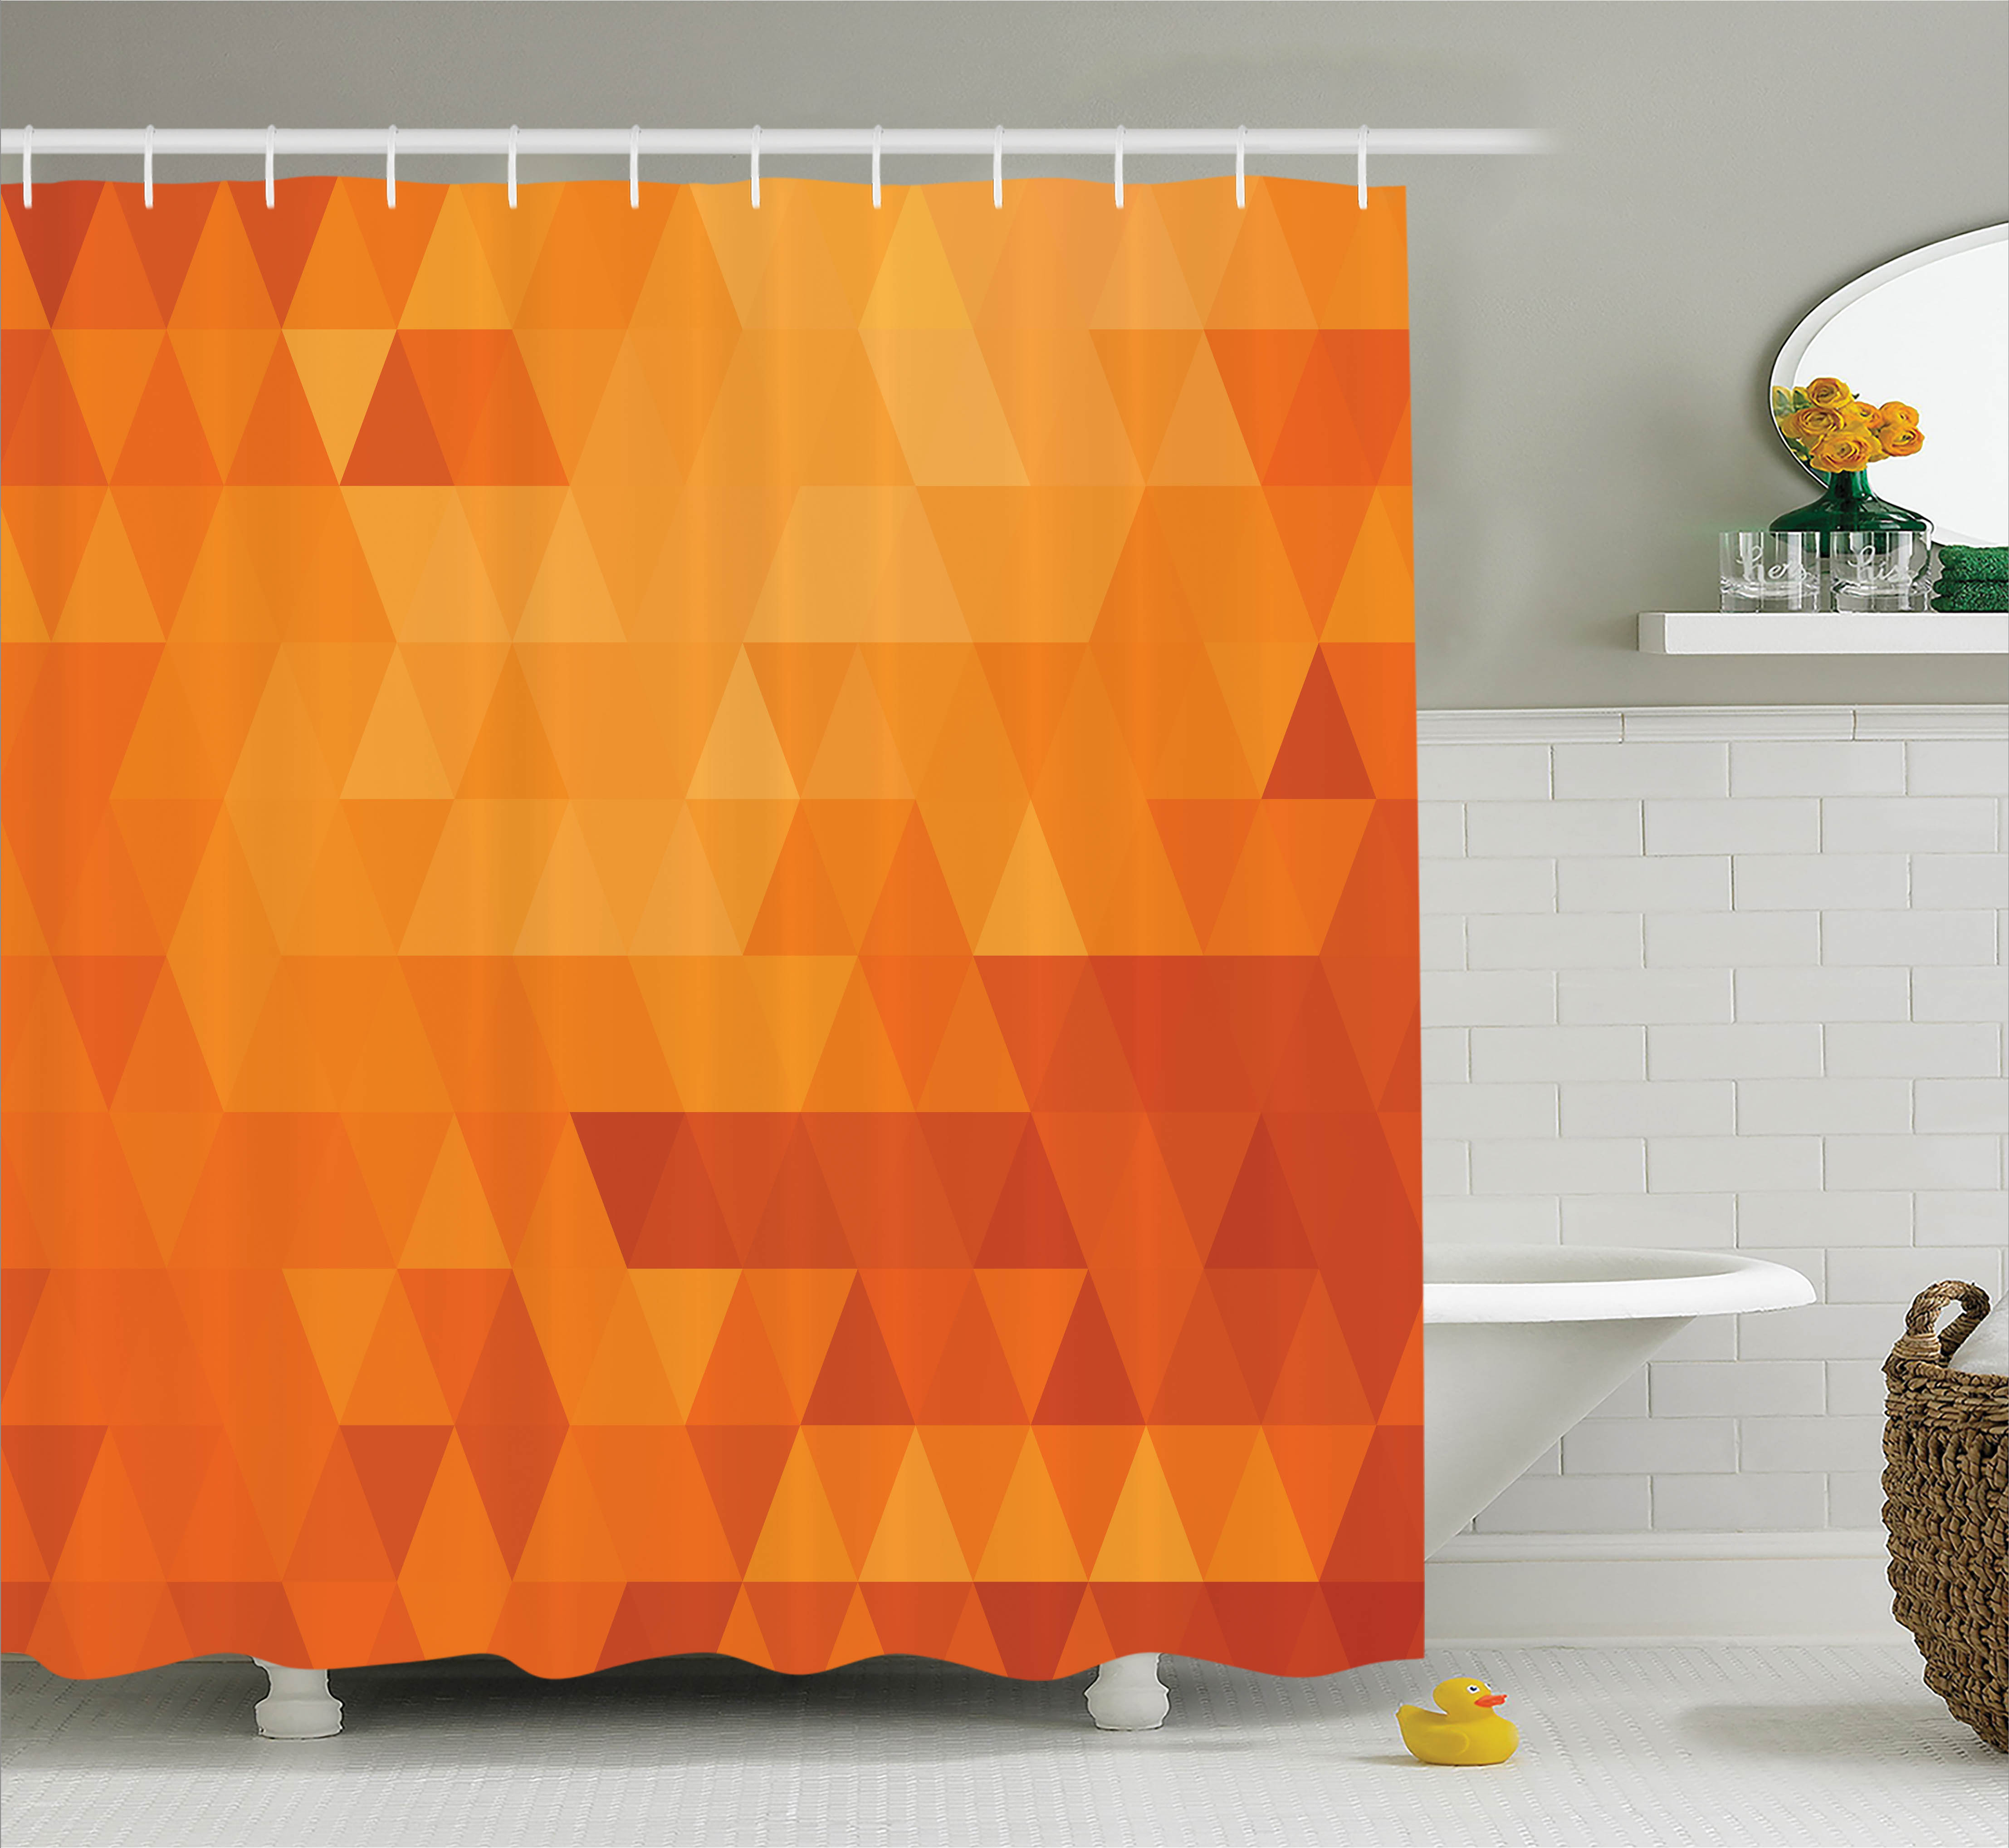 Orange Shower Curtain Set, Triangle Mosaic Shaded Shapes And Patterns  Abstract Digital Pixel Decorative Home, Bathroom Decor, Burnt Orange, By  Ambesonne